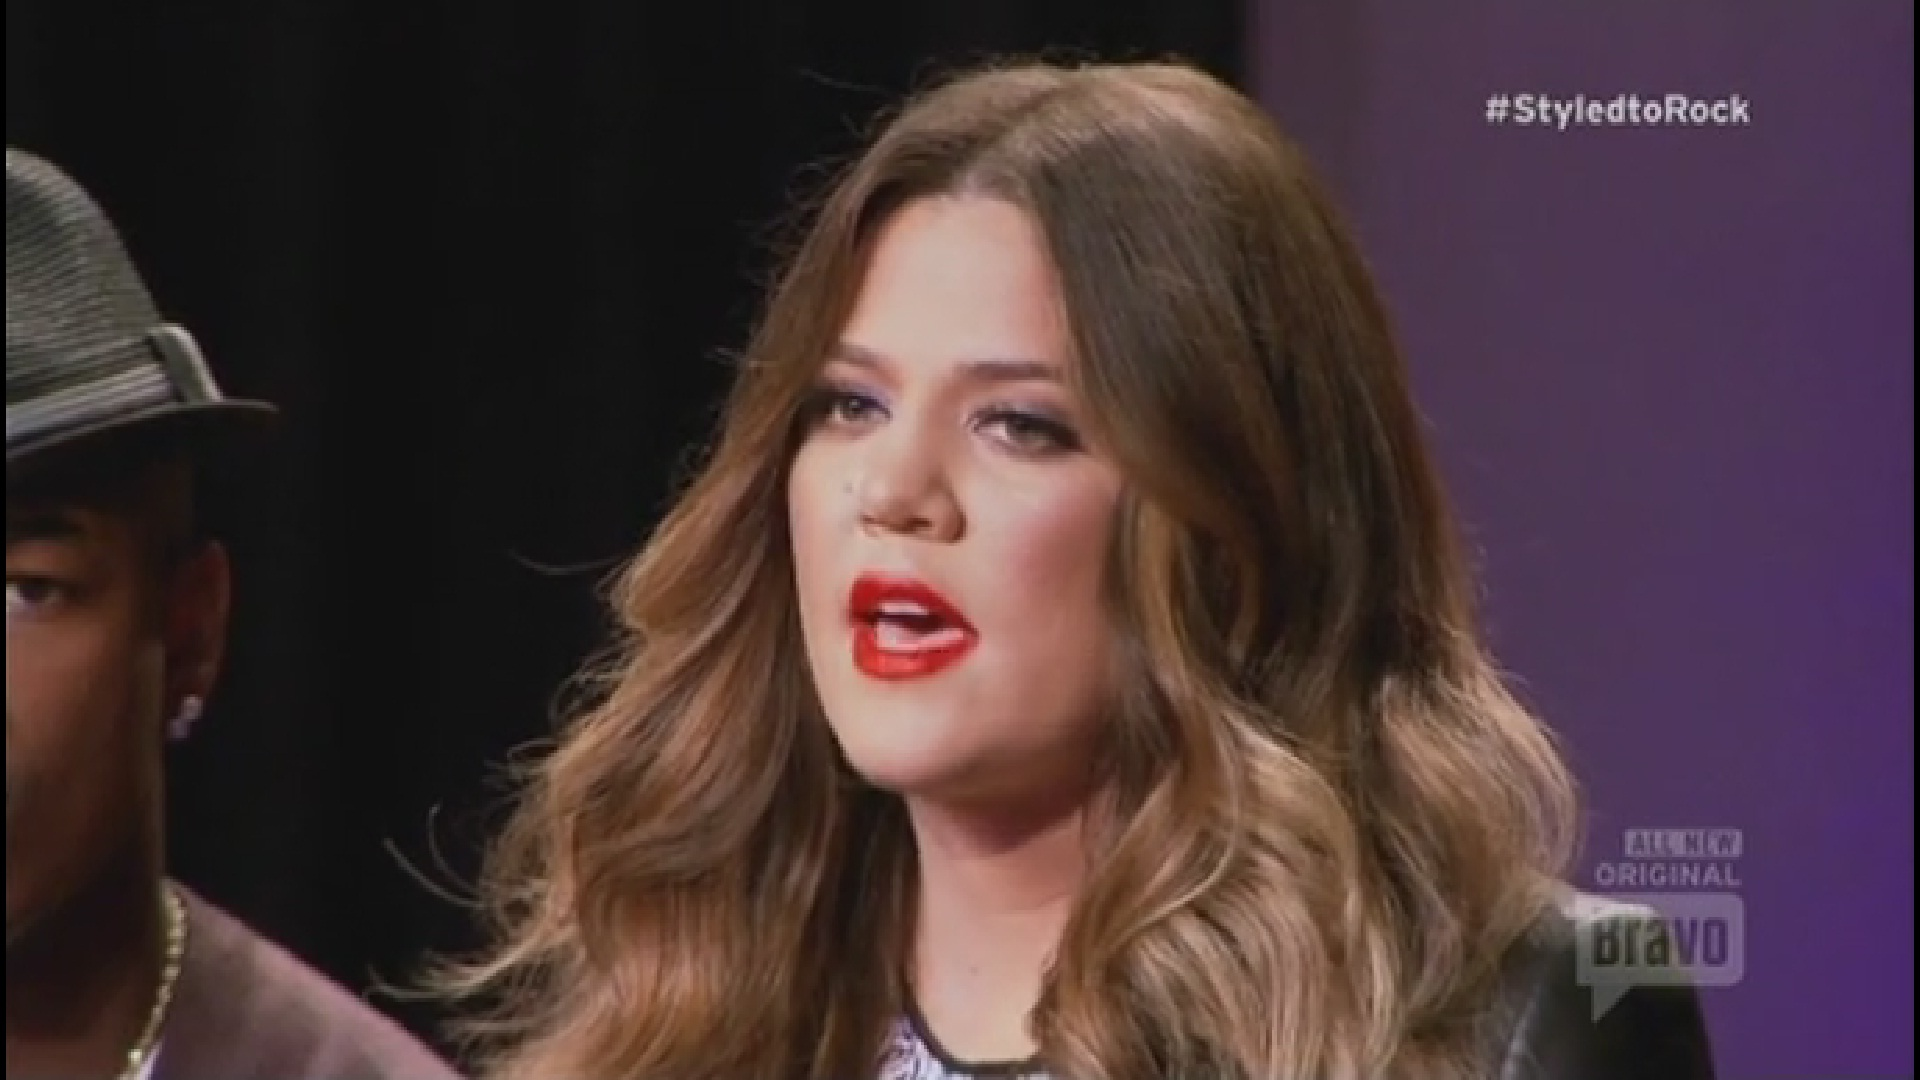 (VIDEO) Khloe Kardashian in Styled to Rock